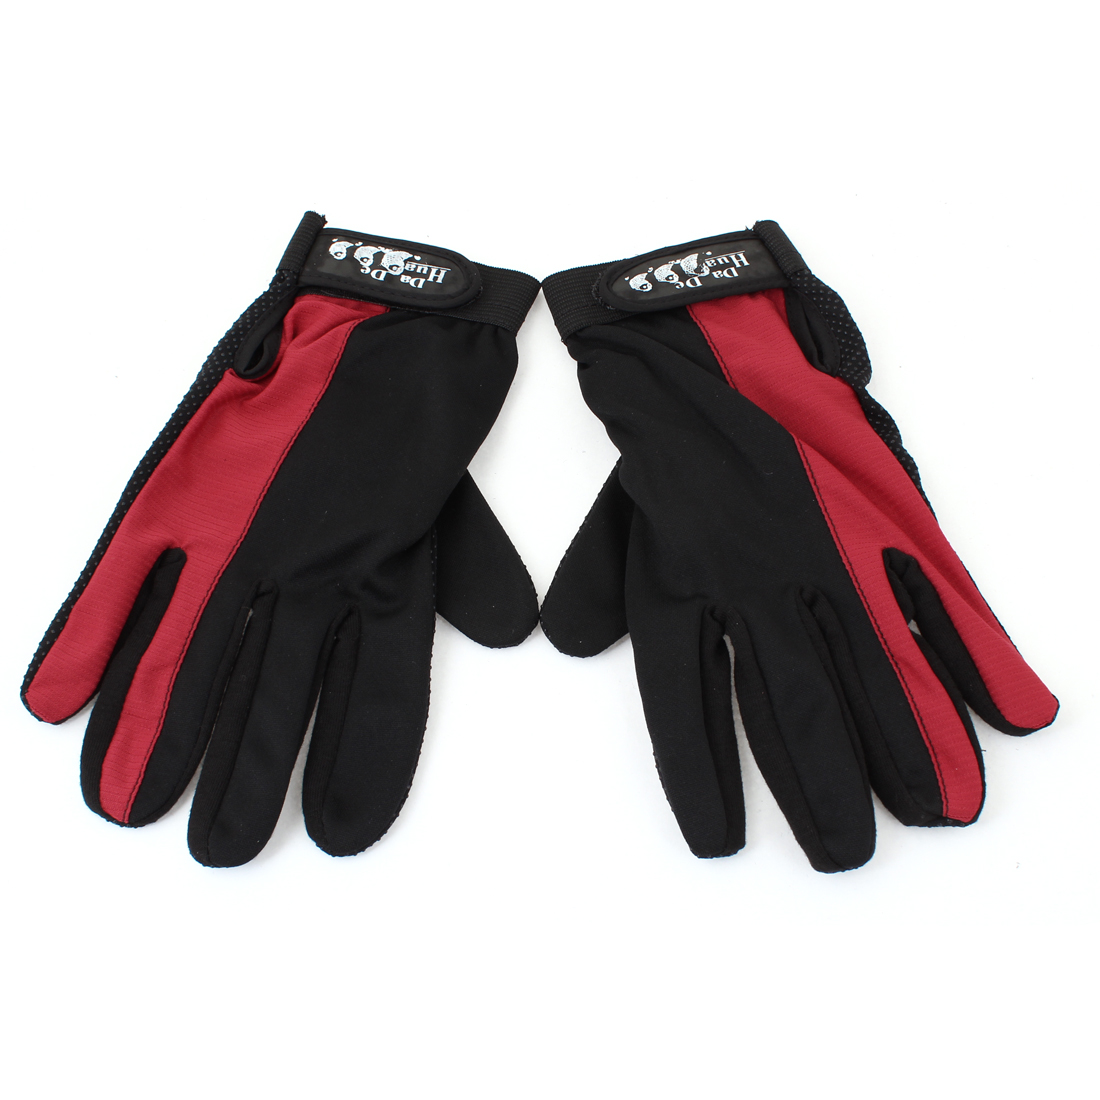 2 Pieces Hook Loop Fastener Antislip Sports Full Finger Gloves Black Red